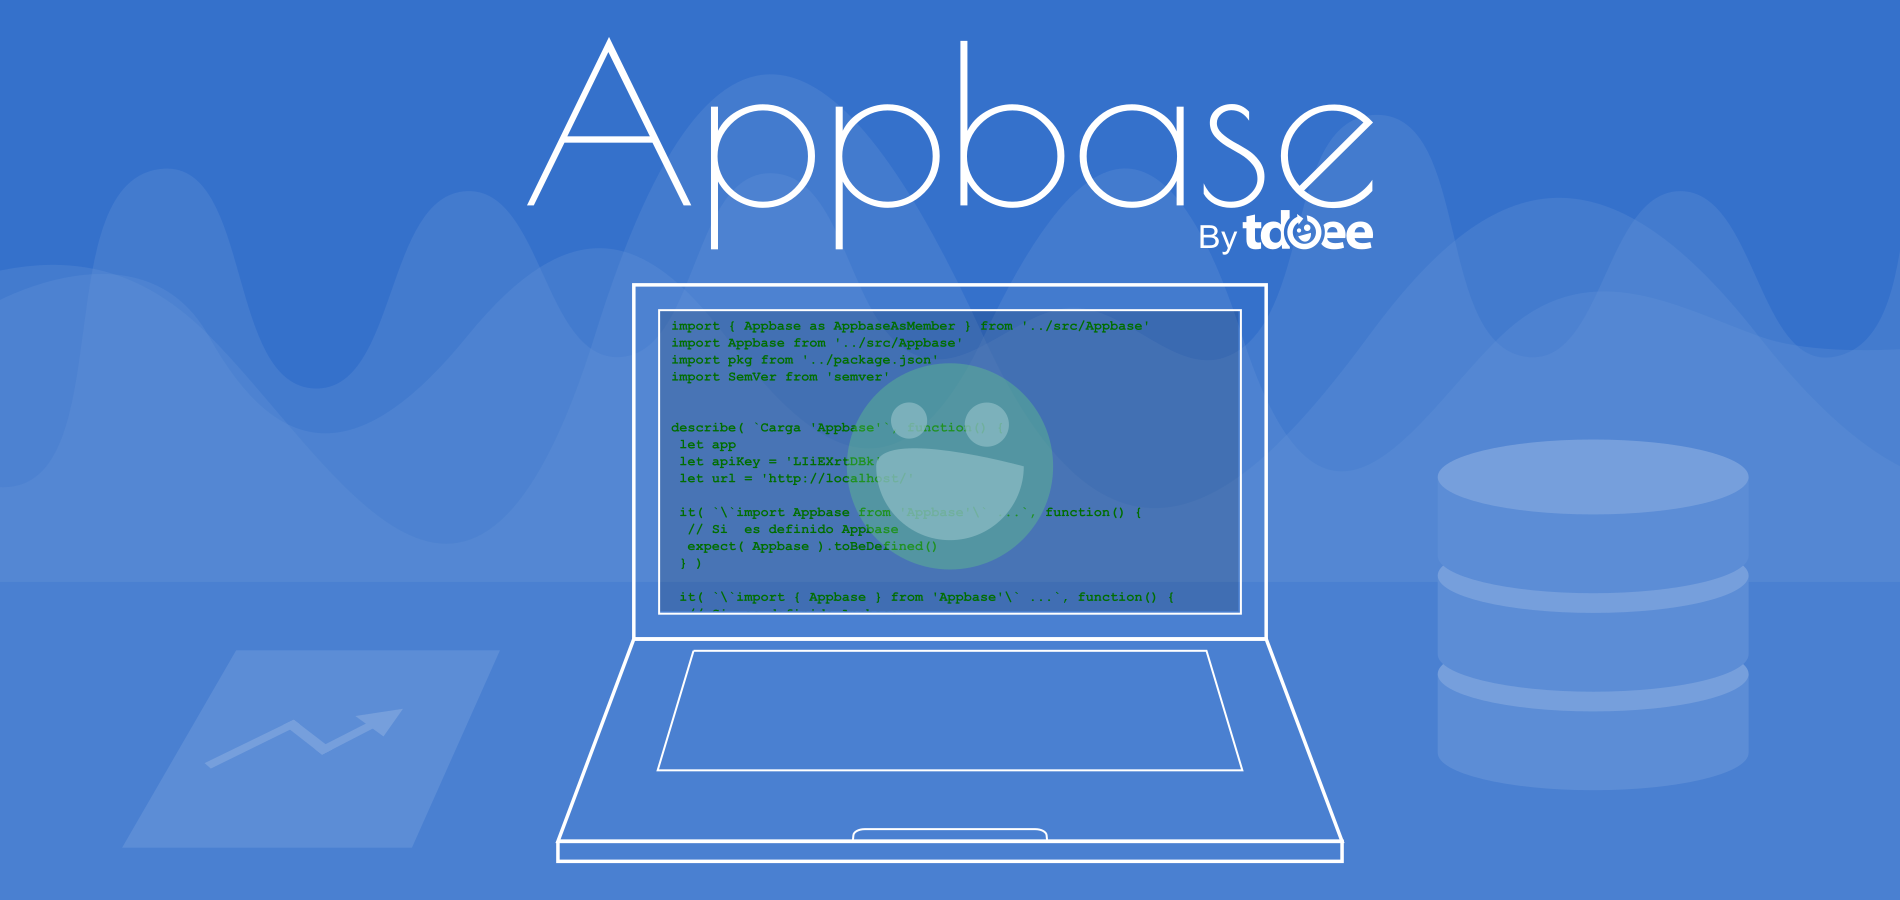 Appbase Background by tdoee